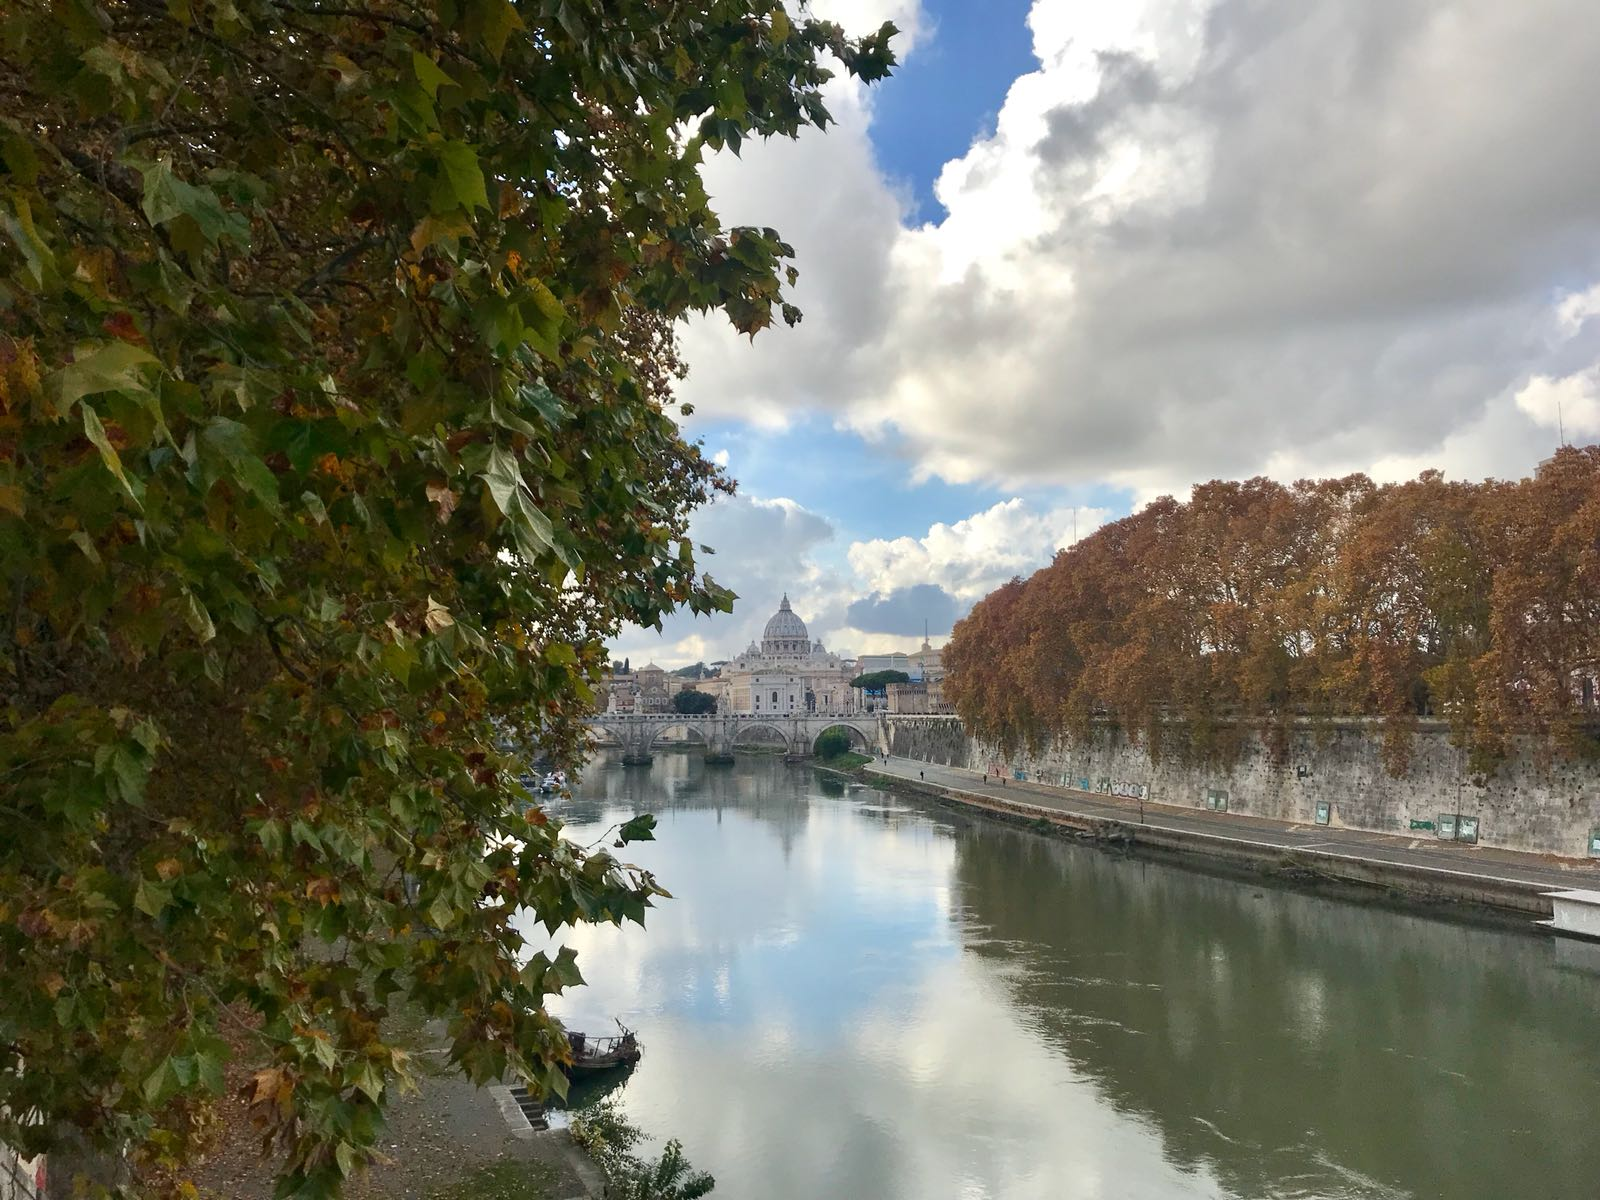 St Peters Basilica viewed from the north bank of the River Tiber